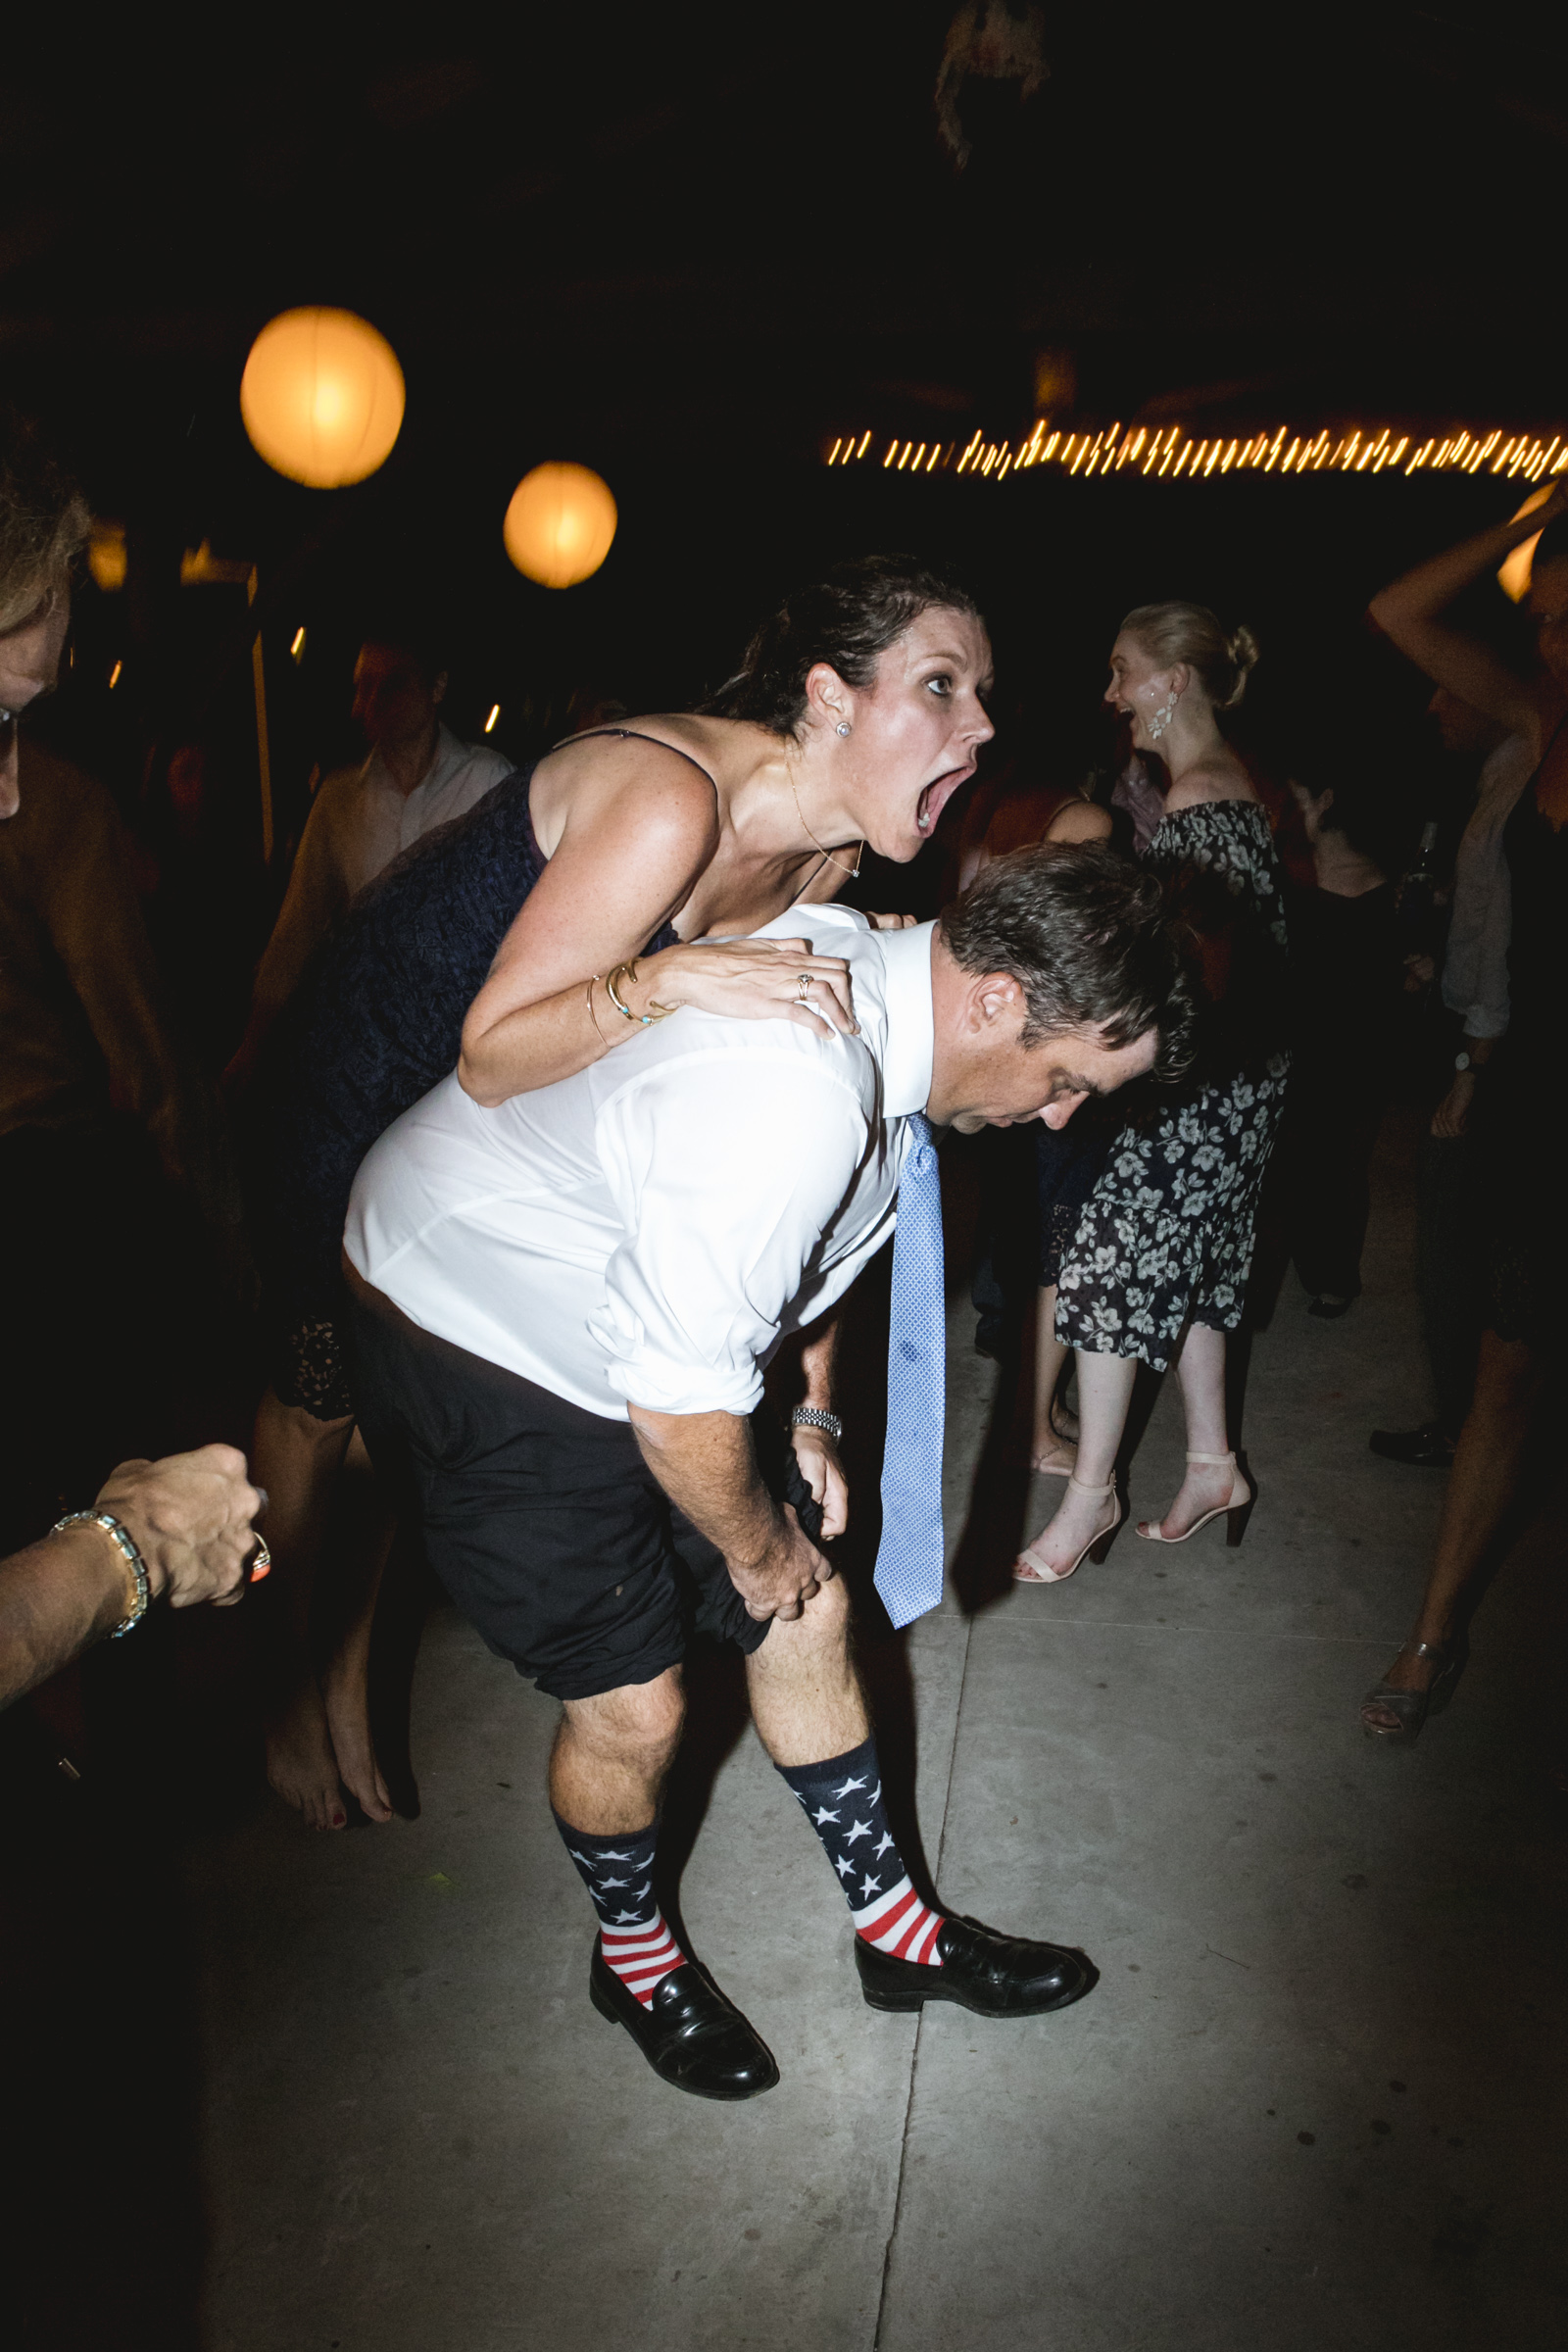 Amy Sims Photography | bridesmaid shouts and she tries to jump over another guests back, as he rolls up his pant legs | Emmerich Tree Farm wedding | Hudson Valley wedding photographer | New York Wedding photographer